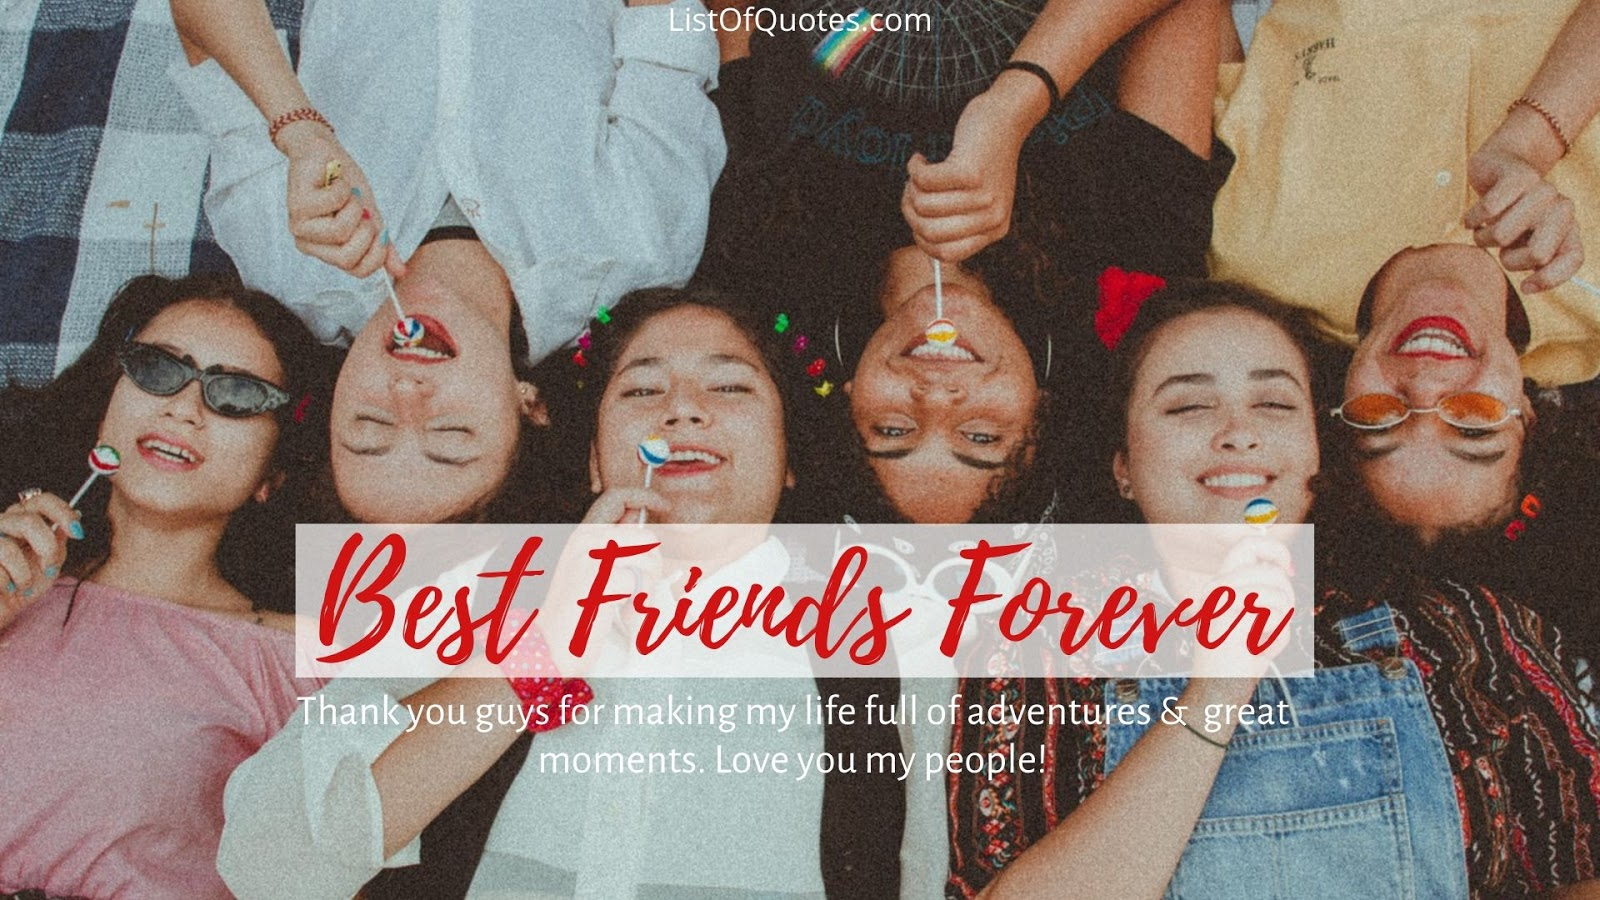 best ever thank you friendship quotes and sayings HD images